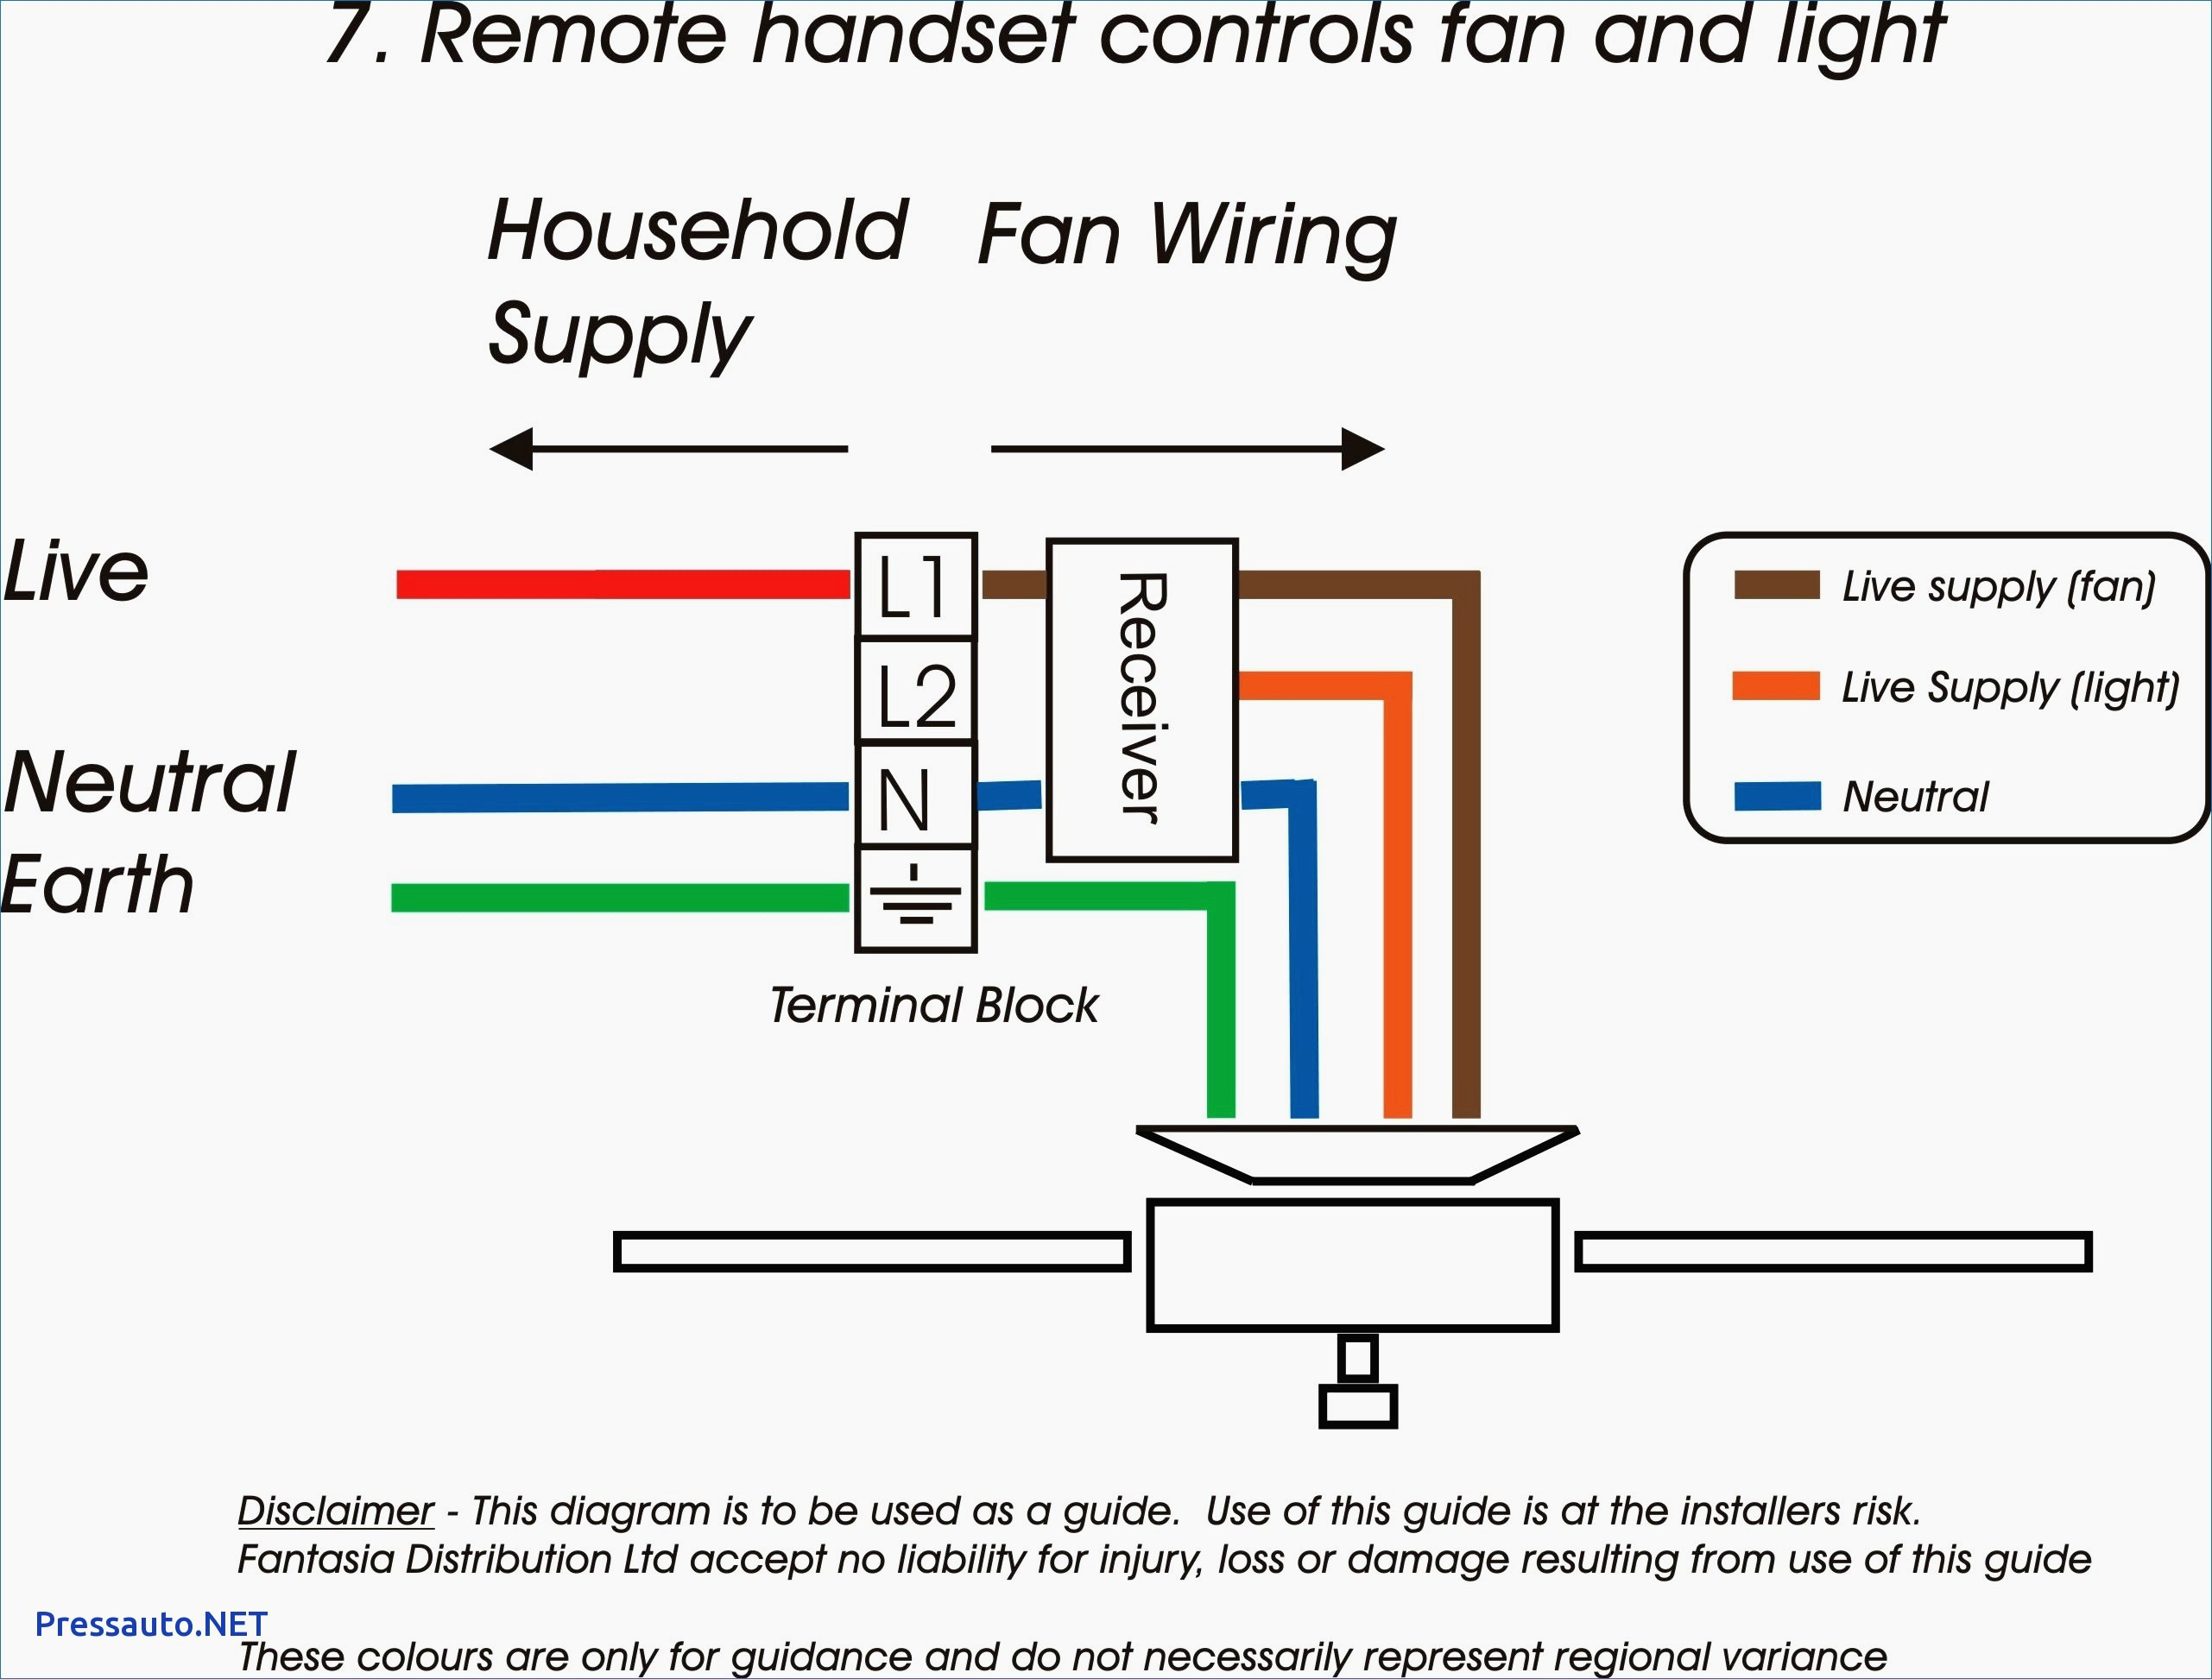 Hampton Bay Ceiling Fan Wiring Diagram with Remote Sample | Wiring on 3-pin computer fan wiring diagram, hampton bay ceiling fans troubleshooting, hampton bay ceiling fans home depot, hampton bay fan switch diagram, hampton bay ceiling fan sensor, hampton bay ceiling fan receiver replacement, hampton bay fan schematic diagram, hampton bay lighting wiring diagrams, ceiling fan installation diagram, hampton bay fan pilot, hampton bay ceiling fan change bulb, hampton bay ceiling fan lighting, hampton bay ventilation fan wiring, hampton bay ceiling fans with lights, hampton bay ceiling fan replacement globes, hunter fan remote wiring diagram, hampton bay ceiling fan brochure, hampton bay ceiling fan parts glass, hampton bay ceiling fan screw, hampton bay ceiling fan harbor breeze,